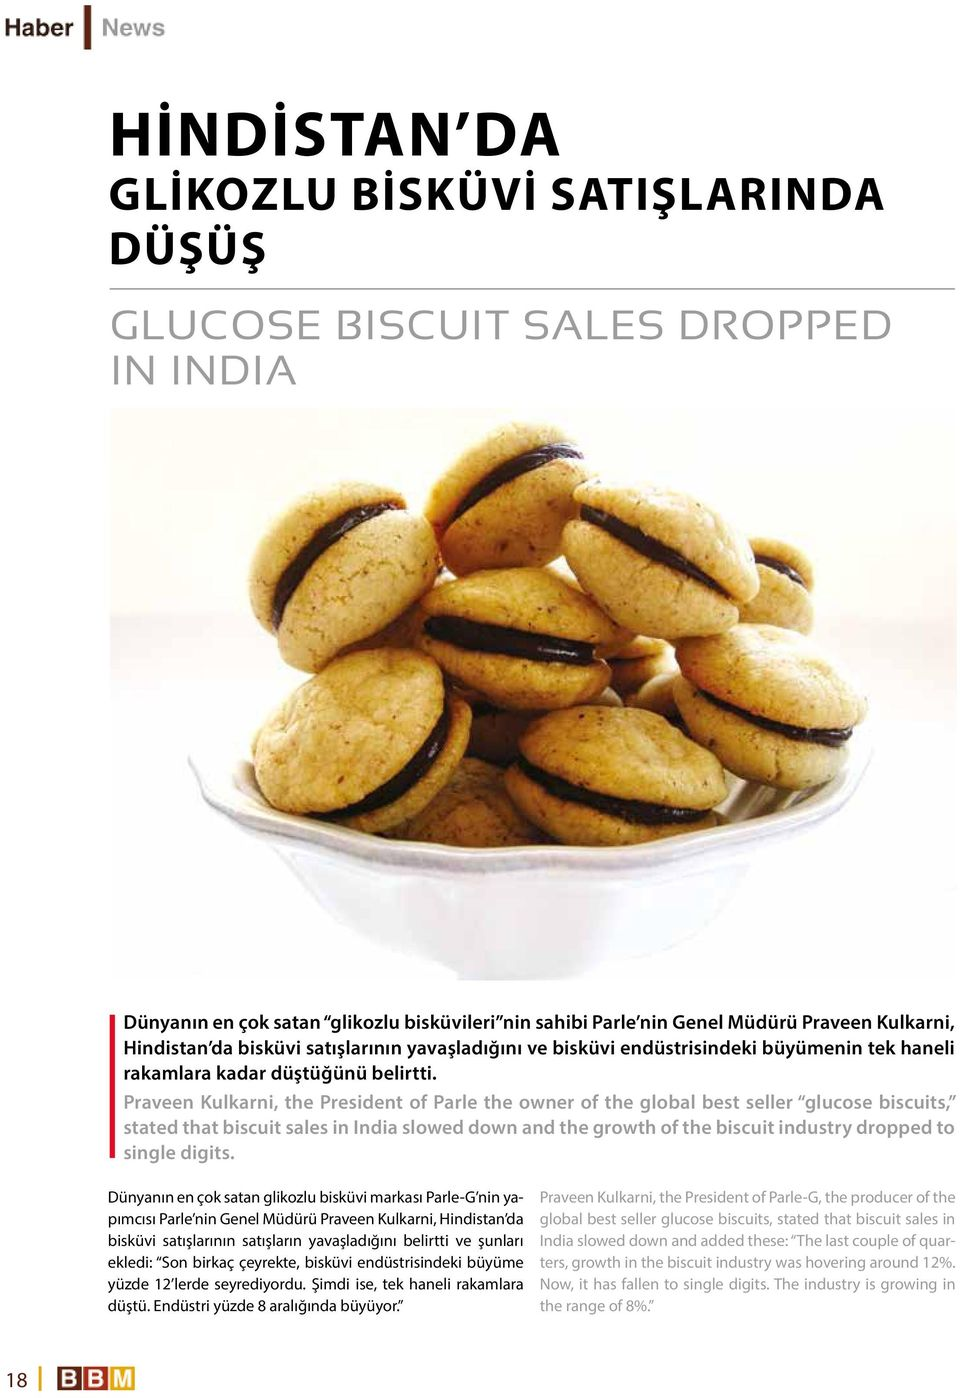 Praveen Kulkarni, the President of Parle the owner of the global best seller glucose biscuits, stated that biscuit sales in India slowed down and the growth of the biscuit industry dropped to single